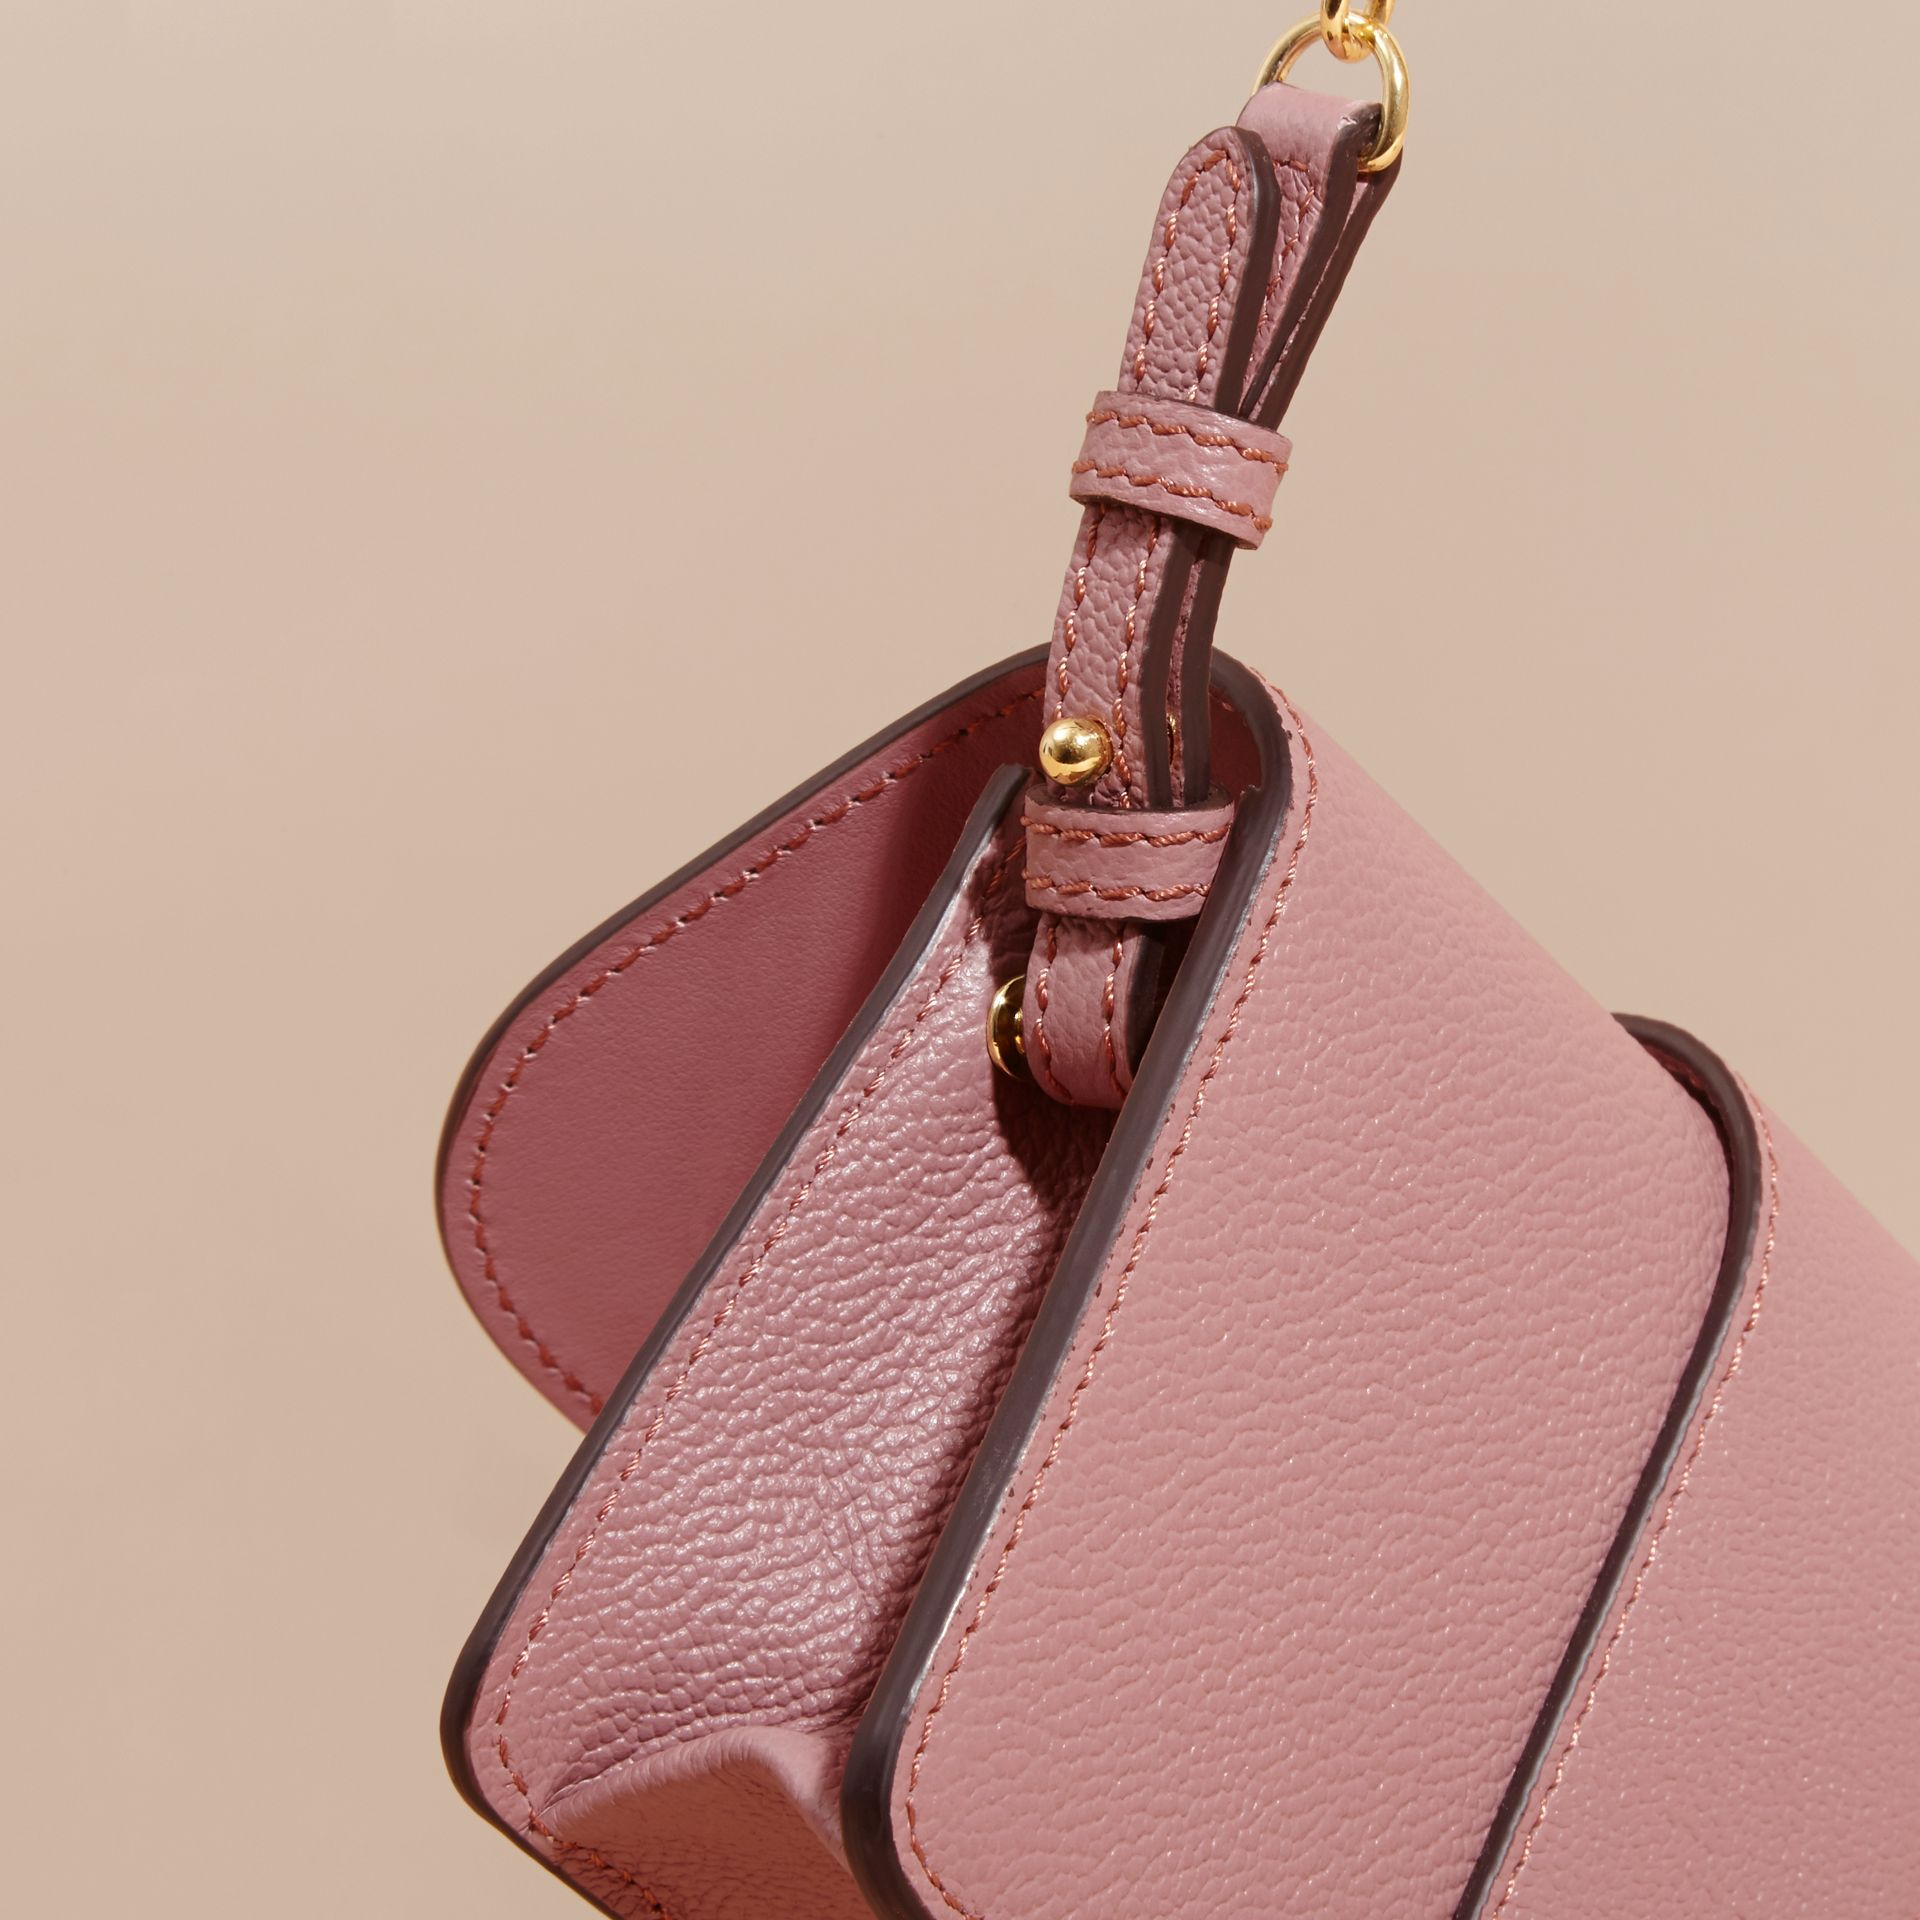 The Mini Buckle Bag in Grainy Leather in Dusty Pink - Women | Burberry Singapore - gallery image 7